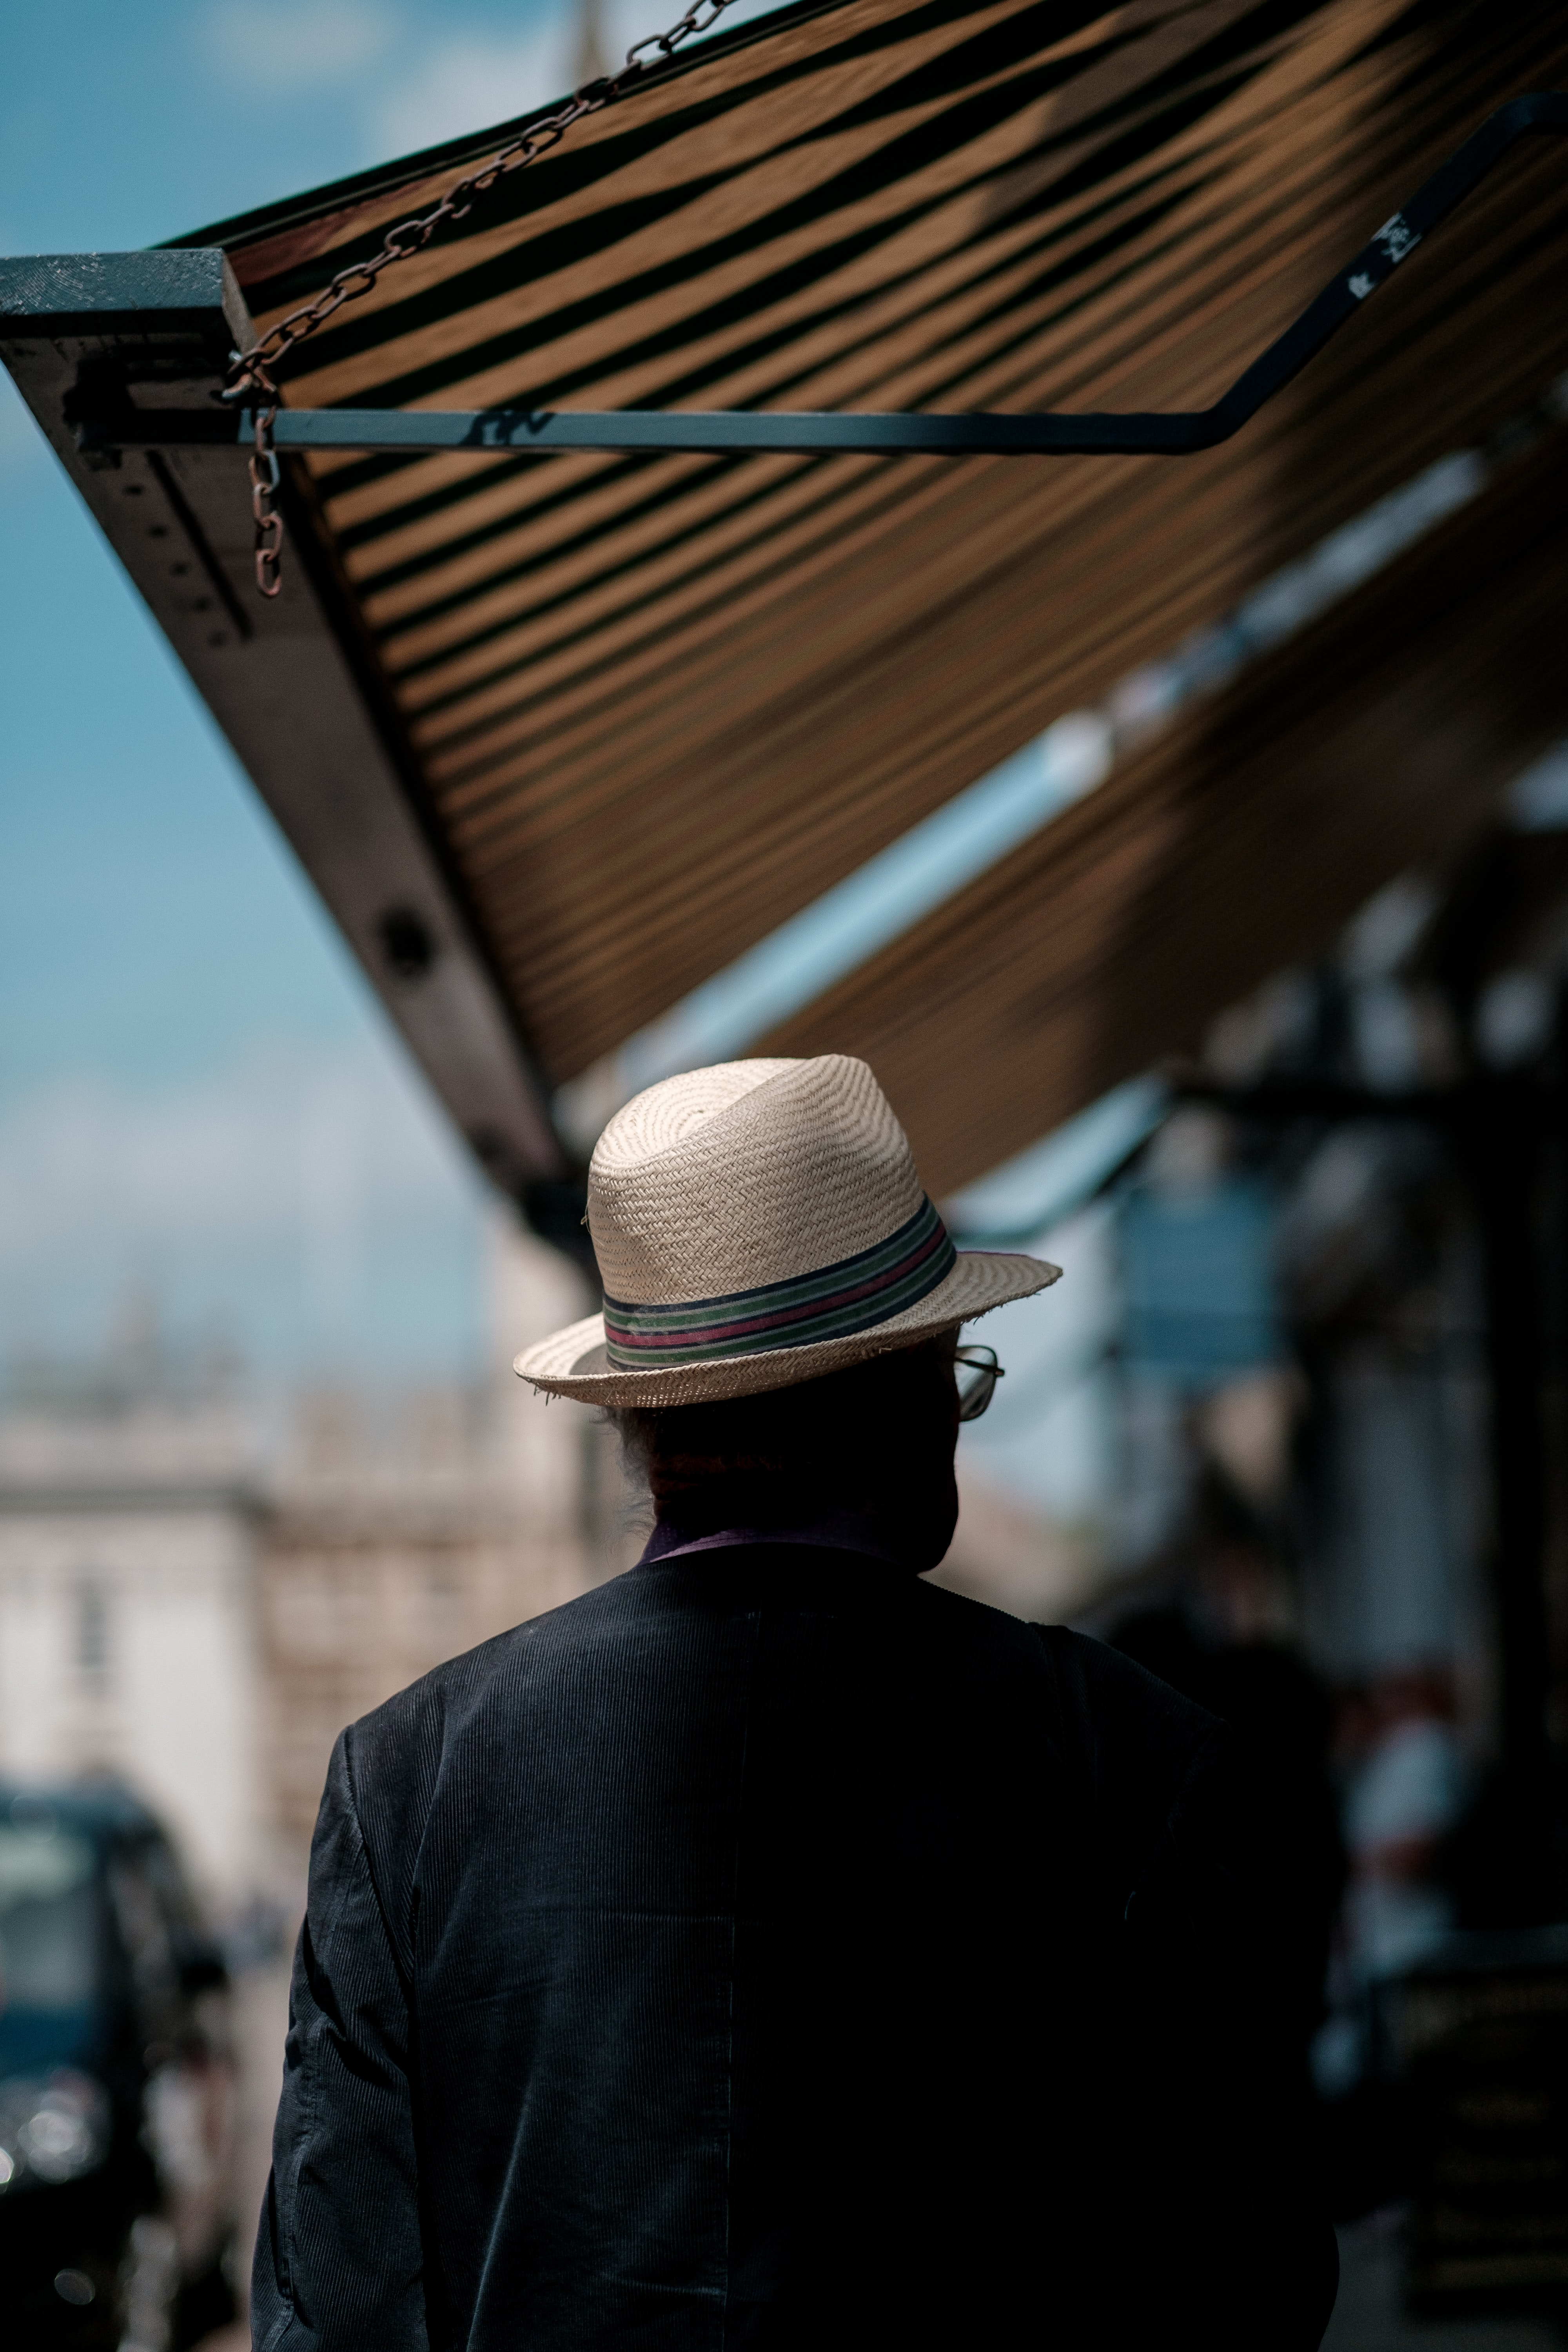 A man in a Panama hat on a sidewalk under an awning